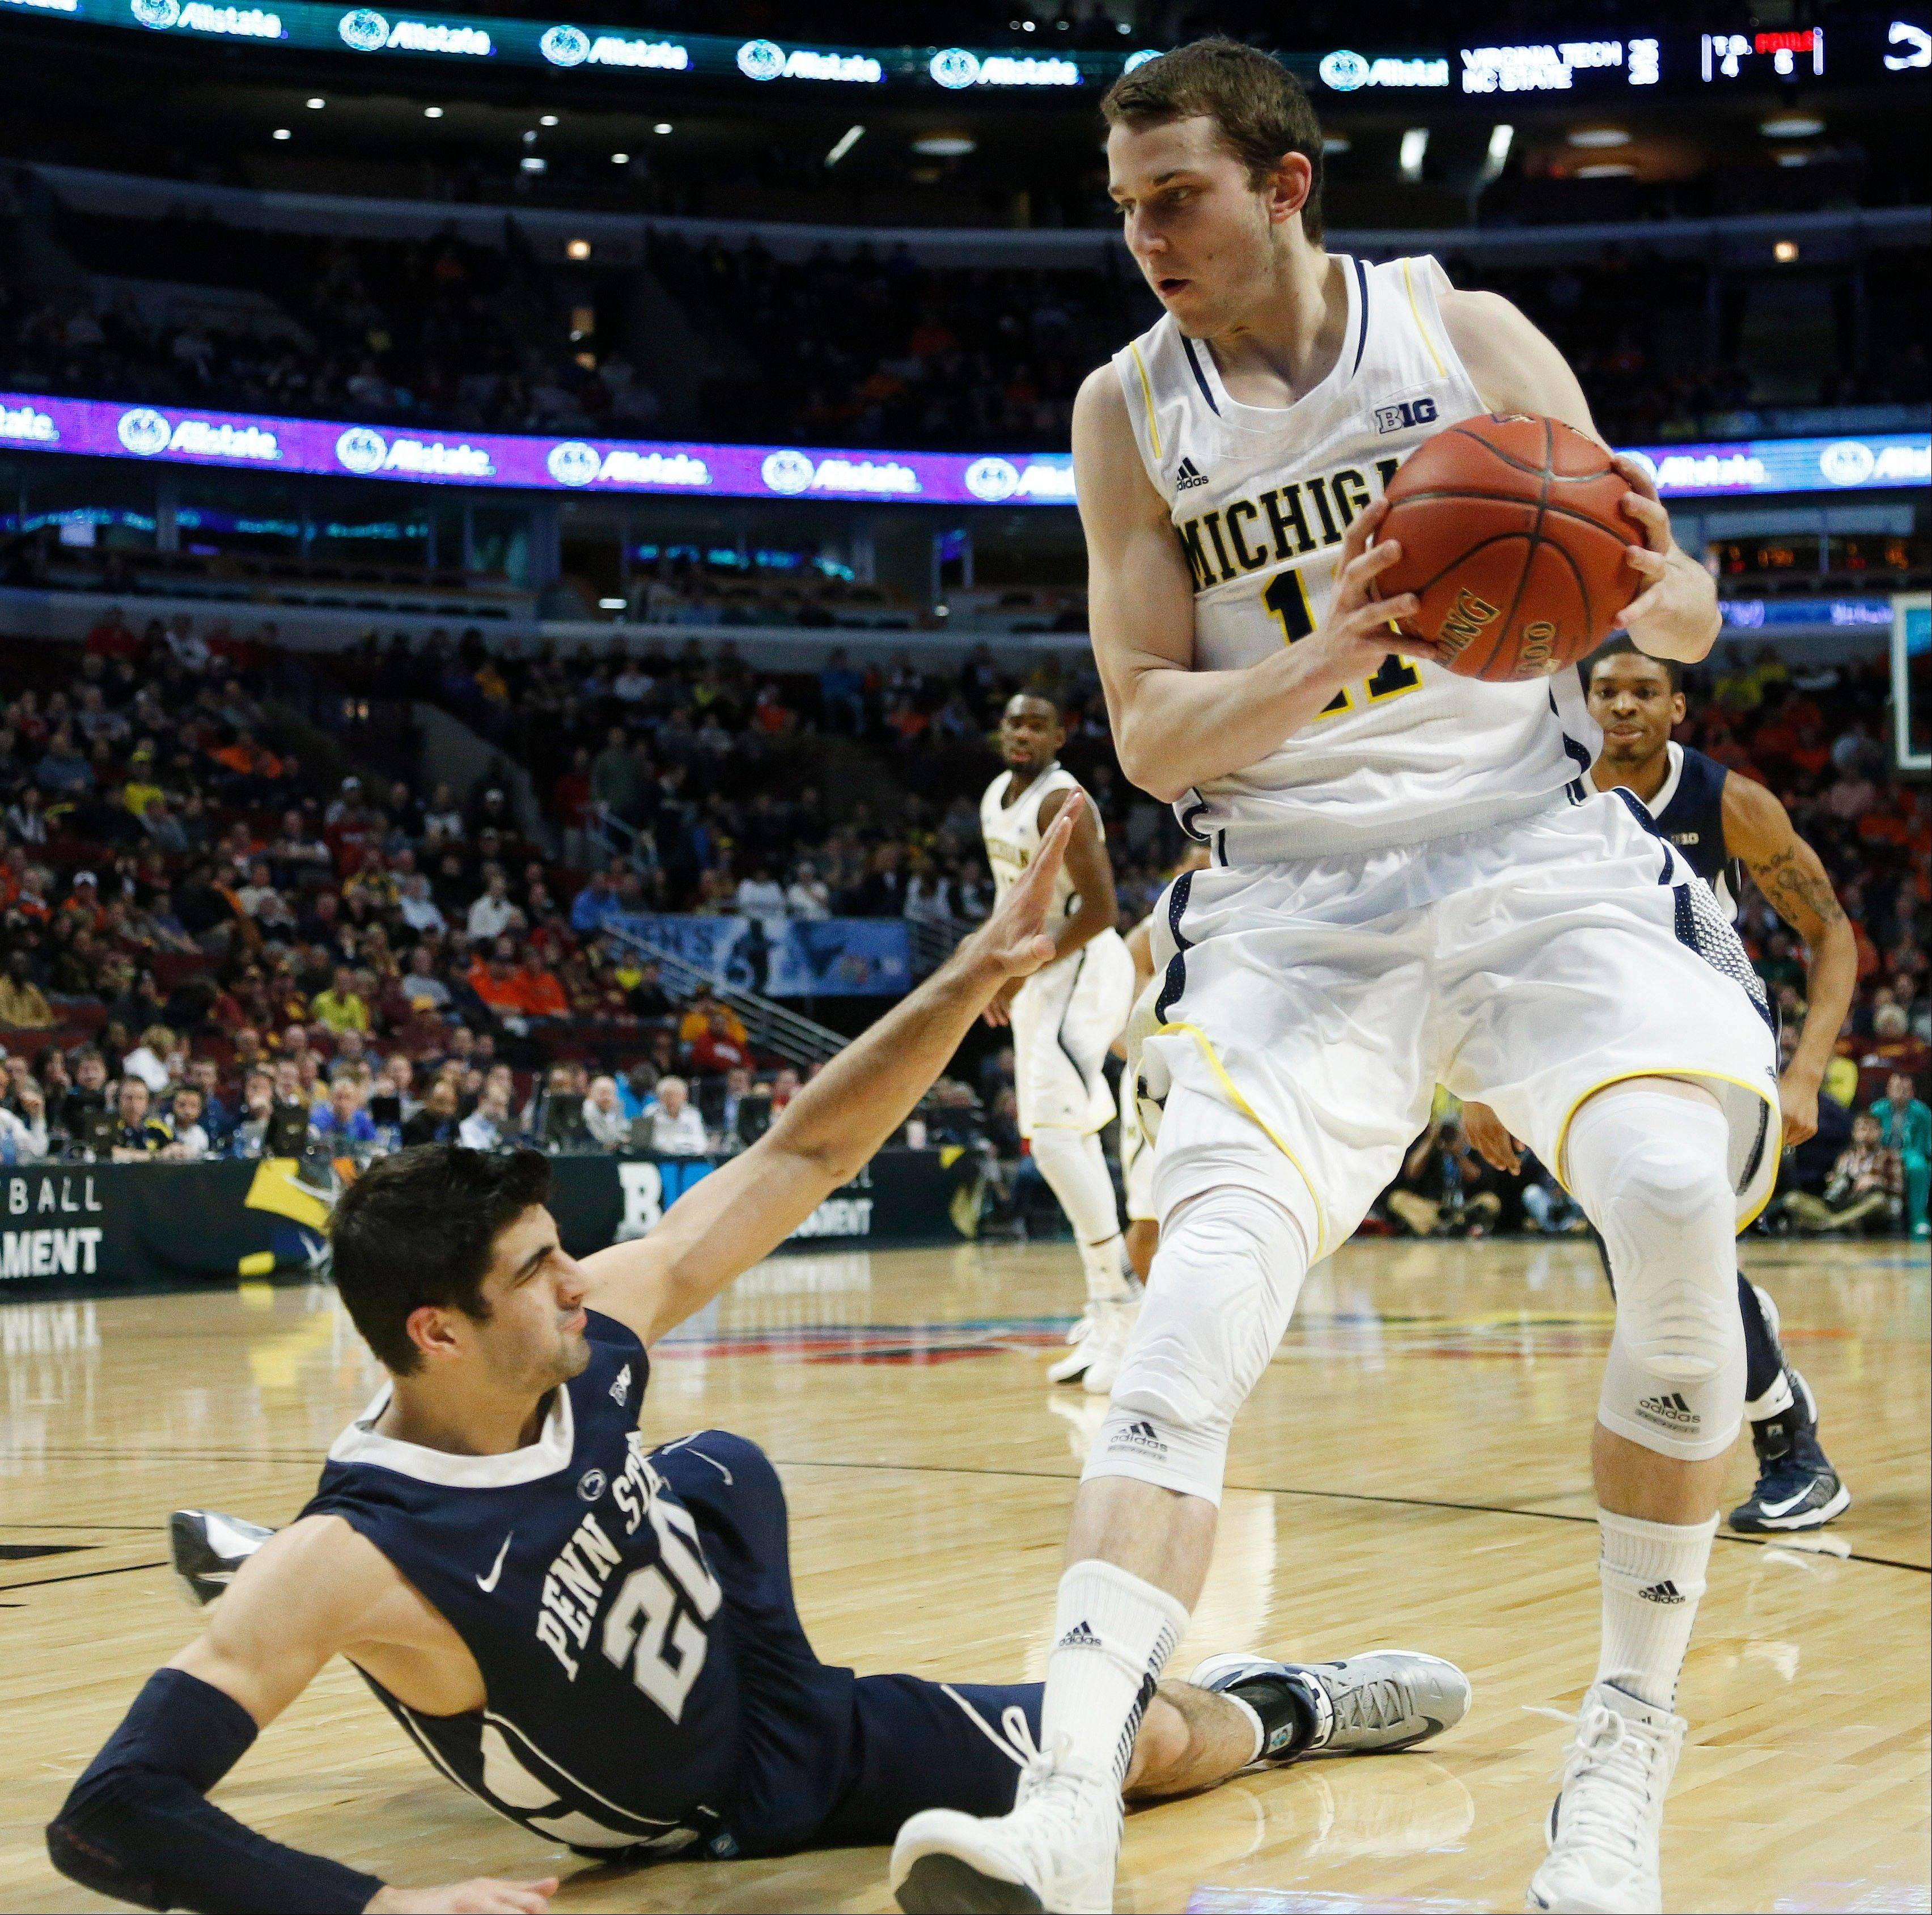 Penn State's Nick Colella falls as he defends Michigan's Nik Stauskas Thrusday during the second half of an opening round game at the Big Ten tournament Thursday at the United Center.